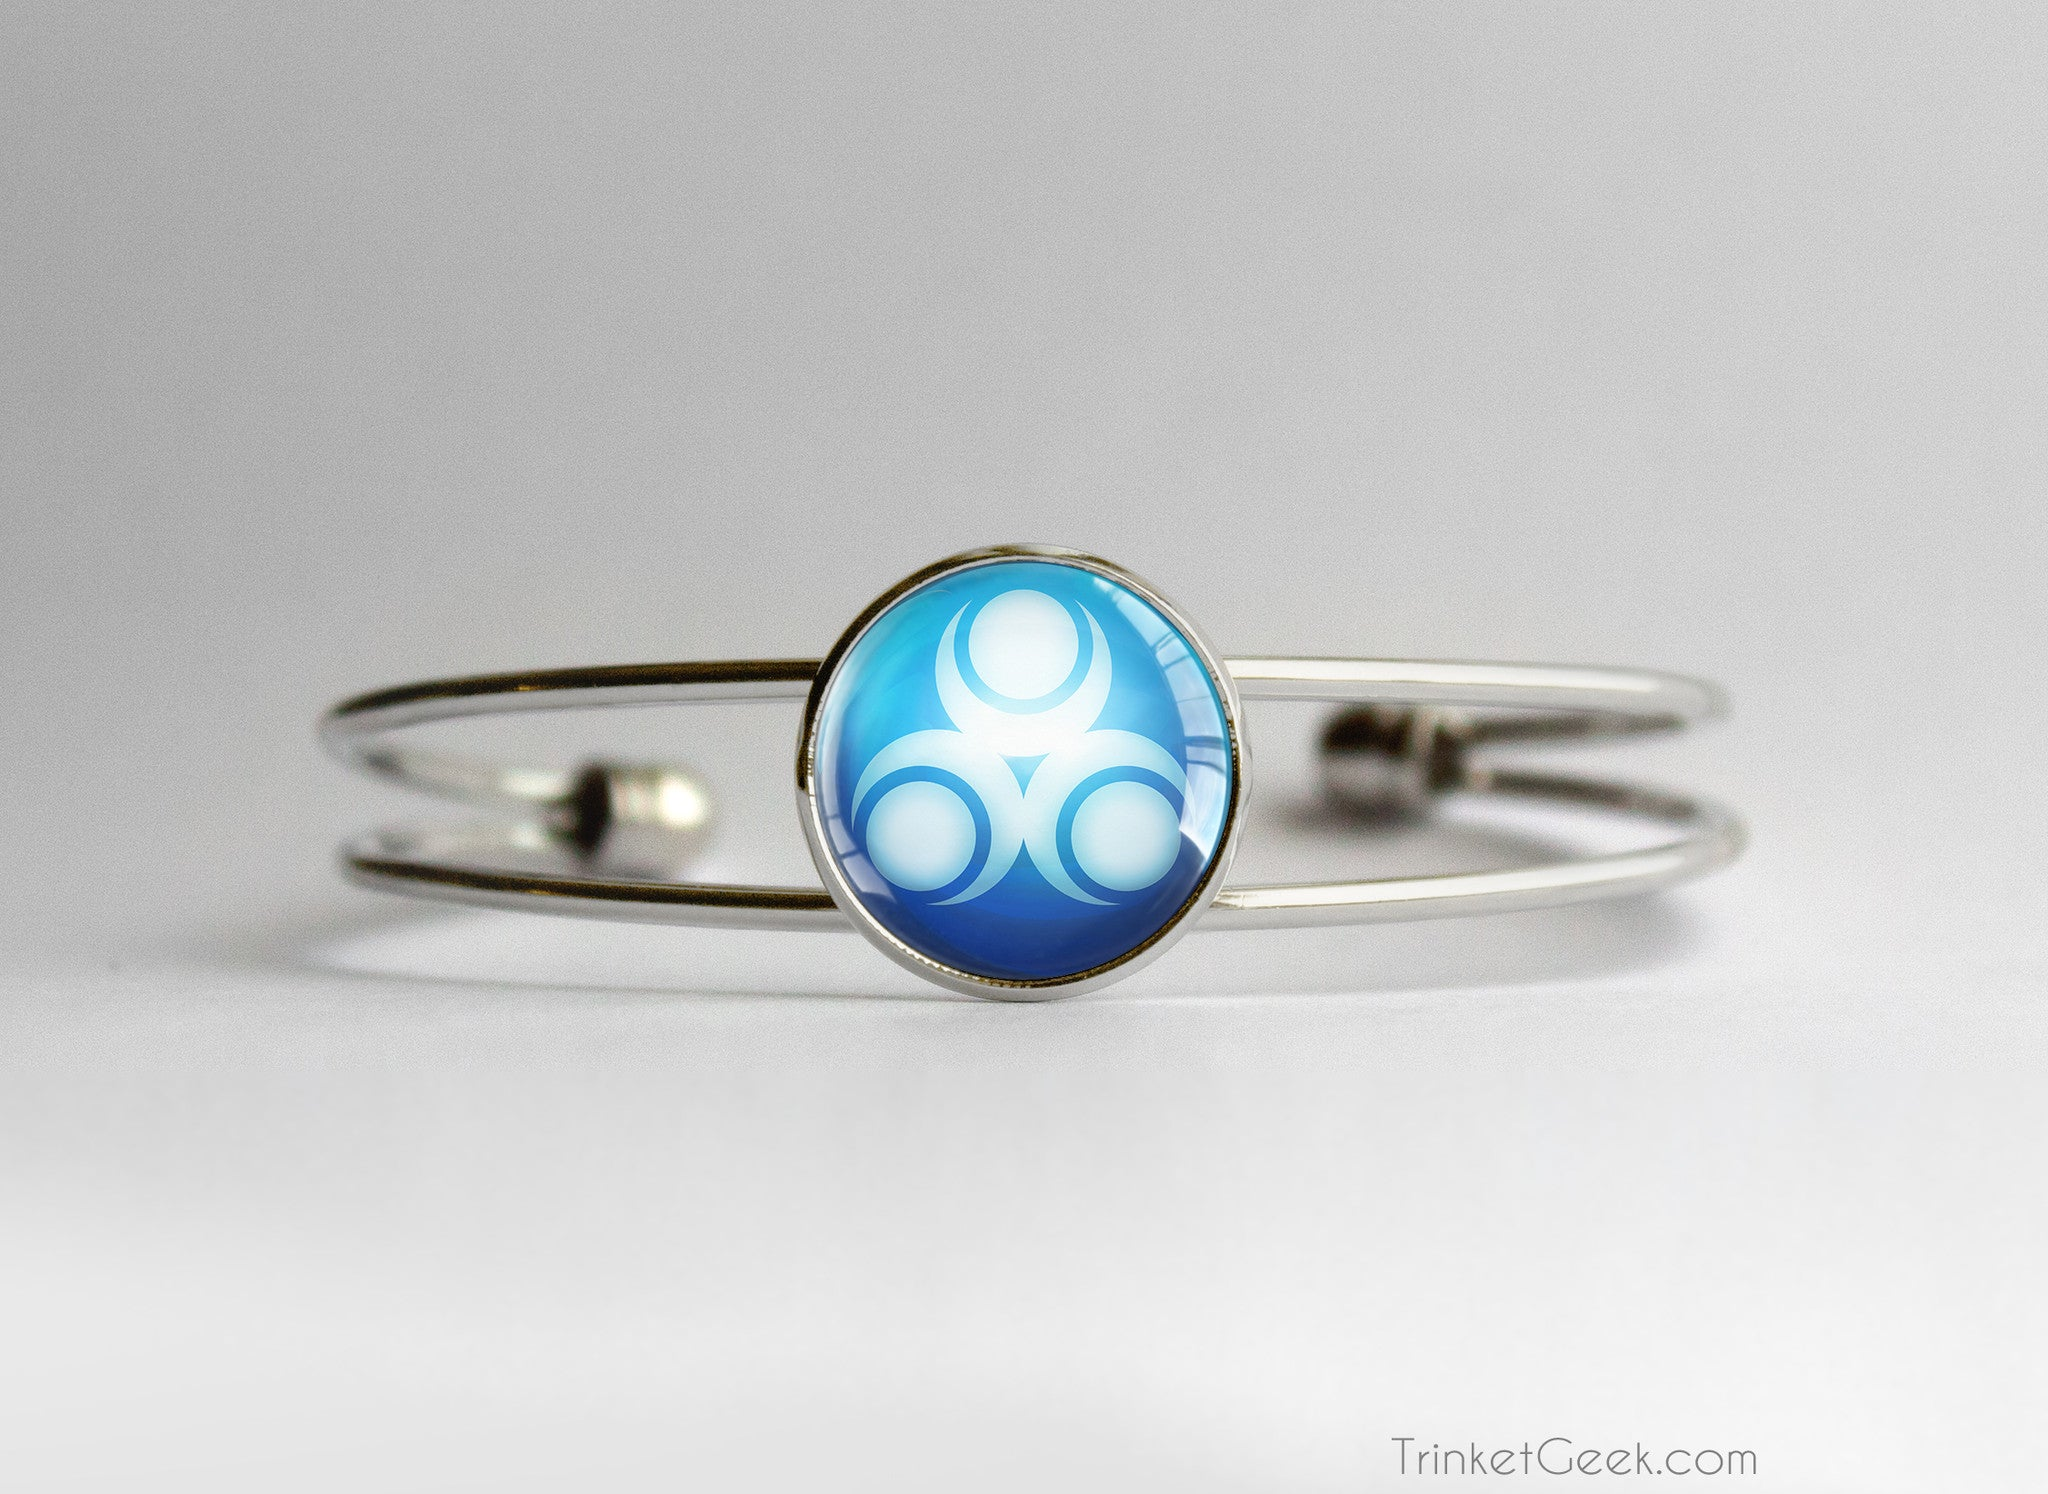 nerd offbeat decor bride on pokeball wedding ideas nerdy rings